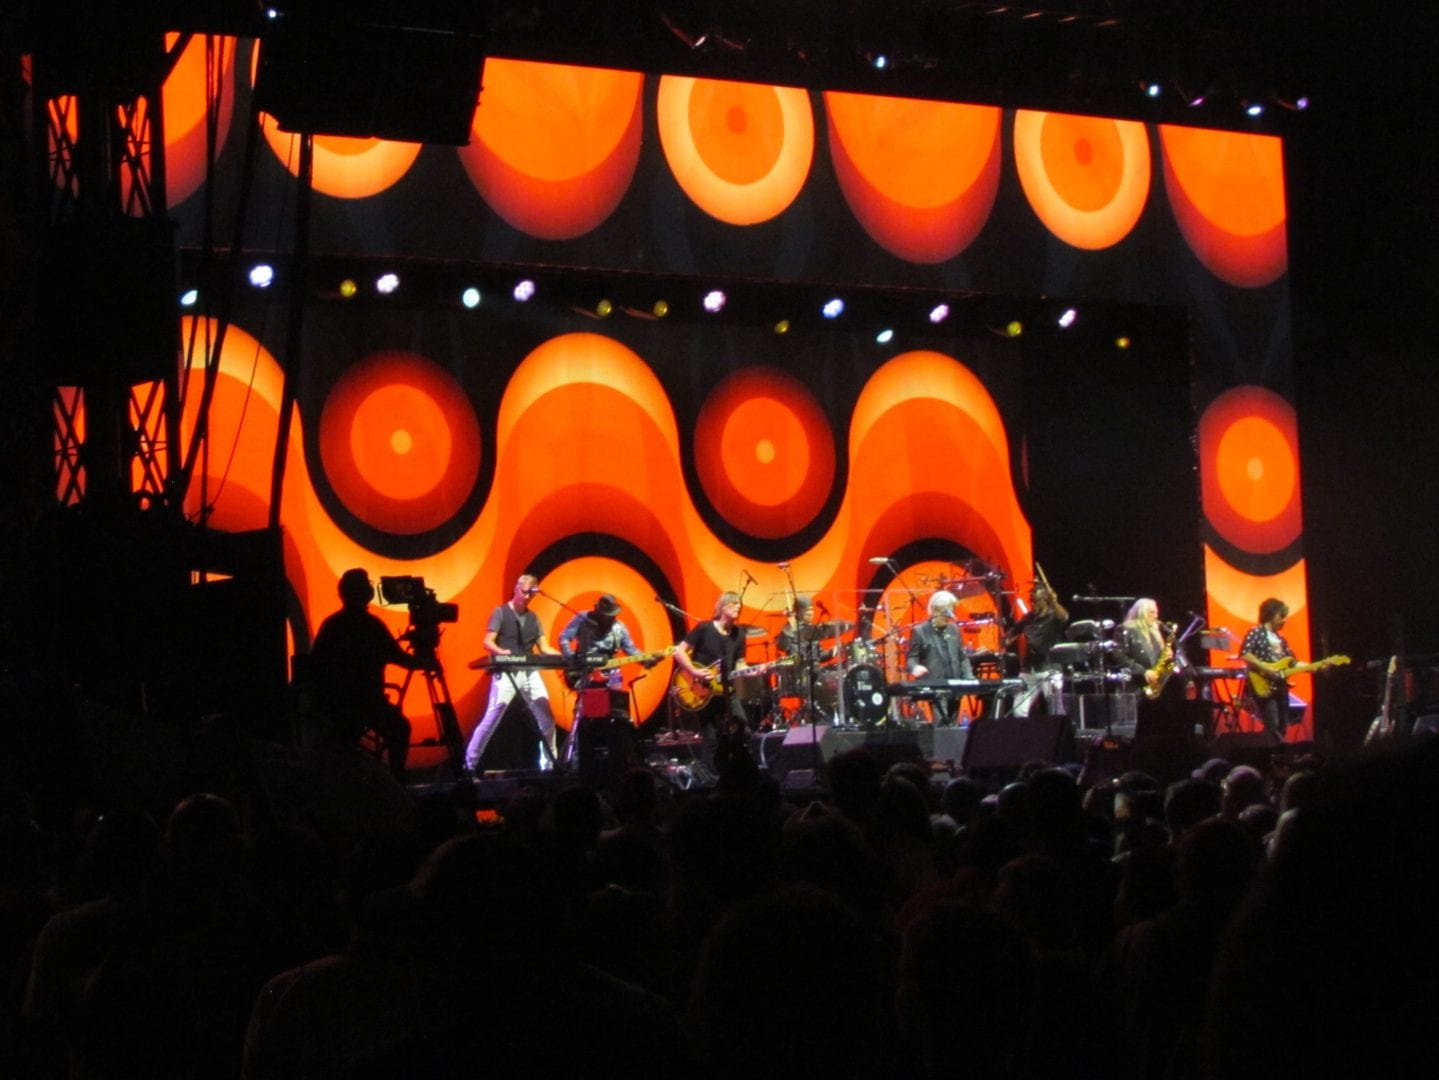 Hall Oates with his band